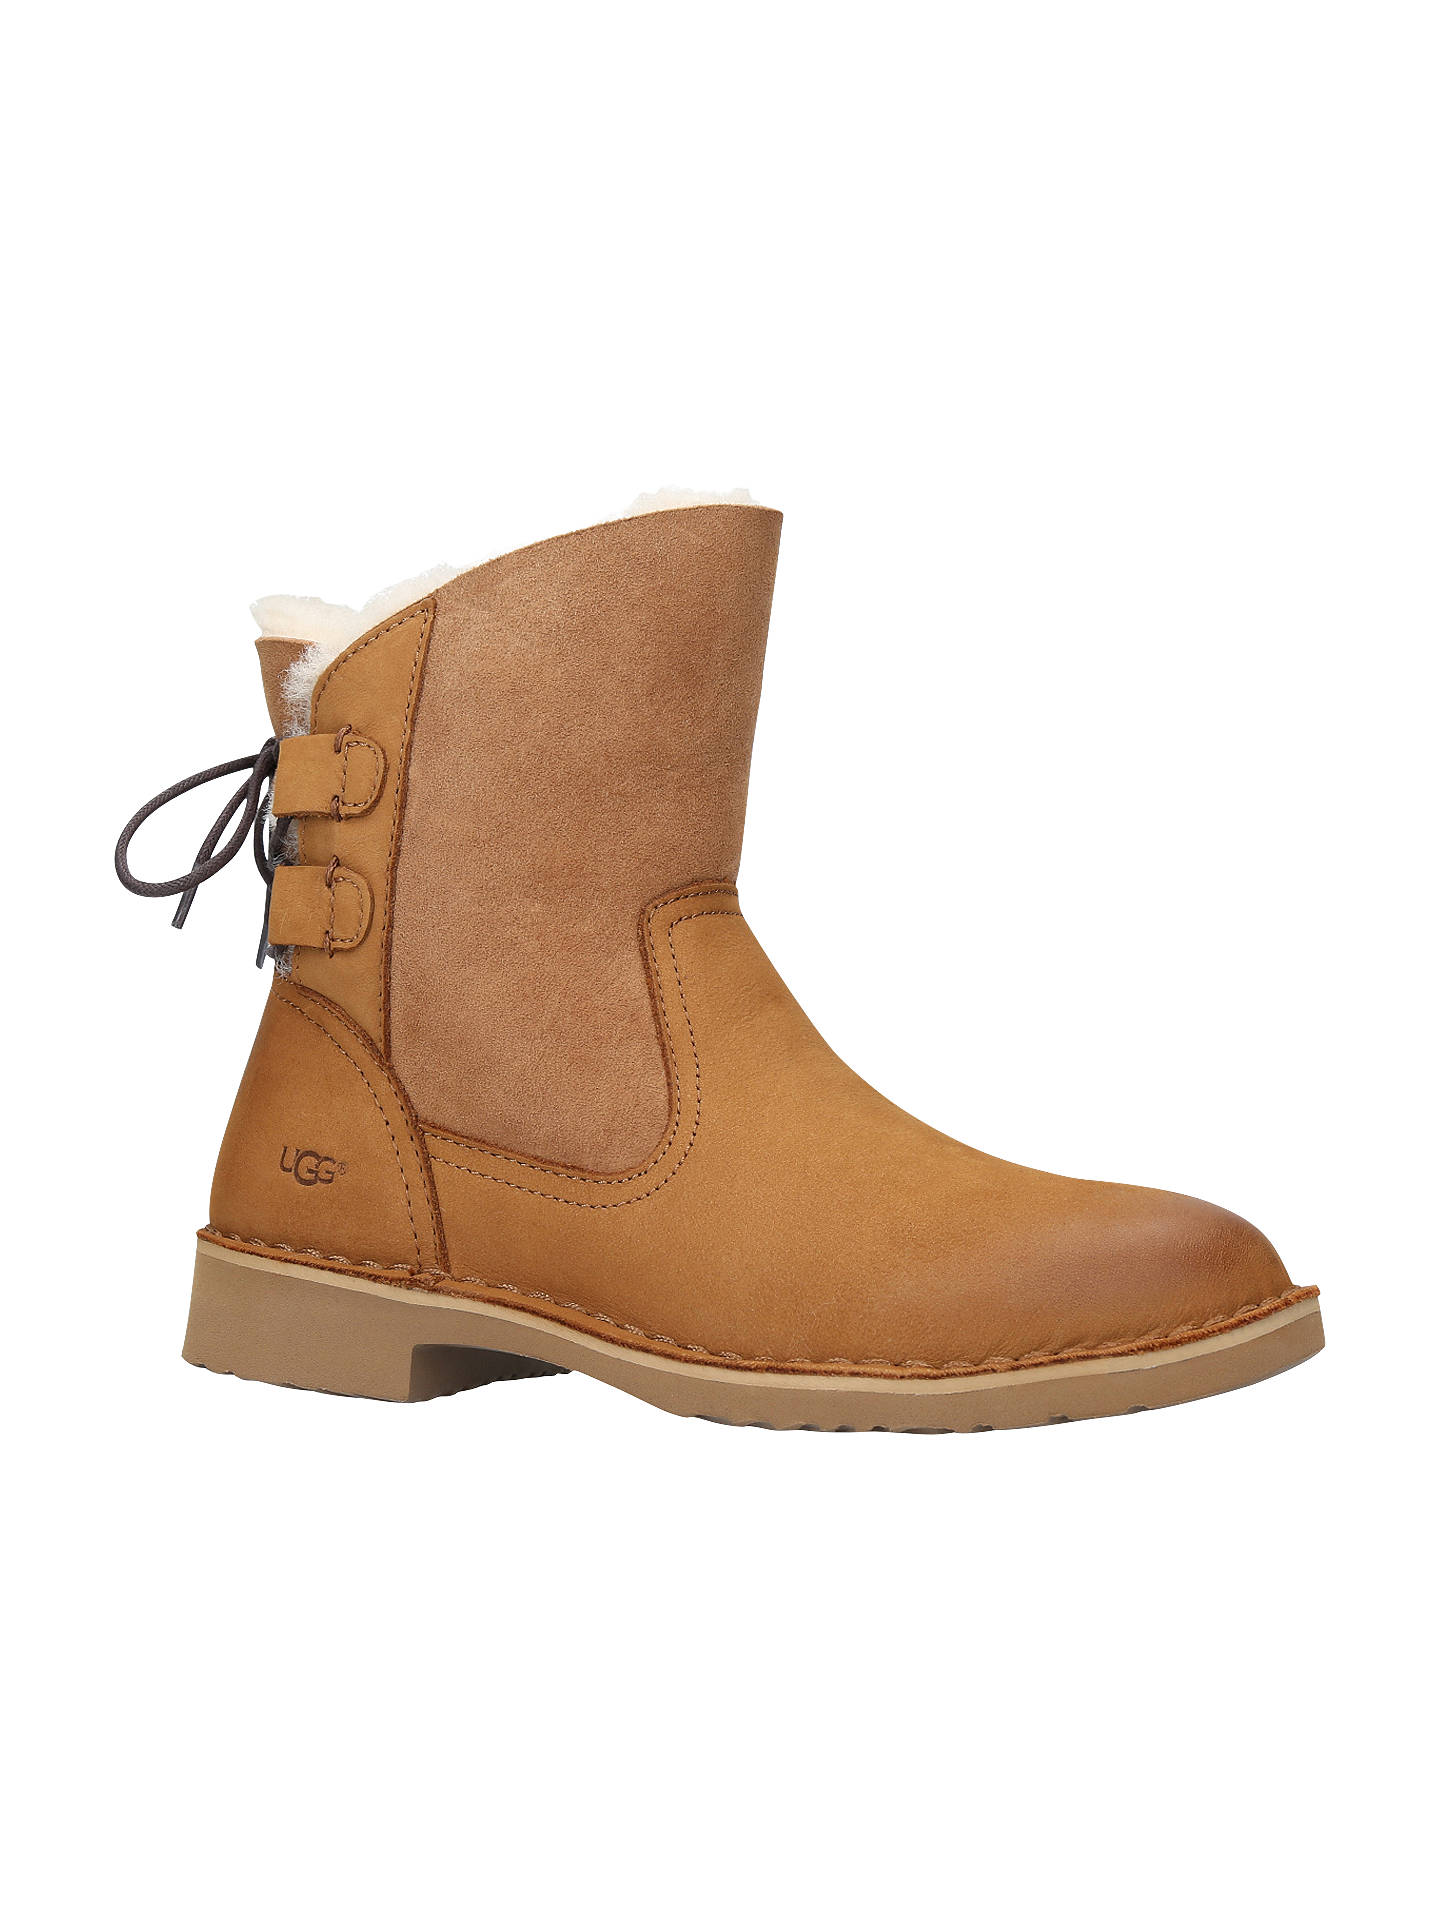 c682320dd30 UGG Naiyah Lace Up Ankle Boots, Brown at John Lewis & Partners